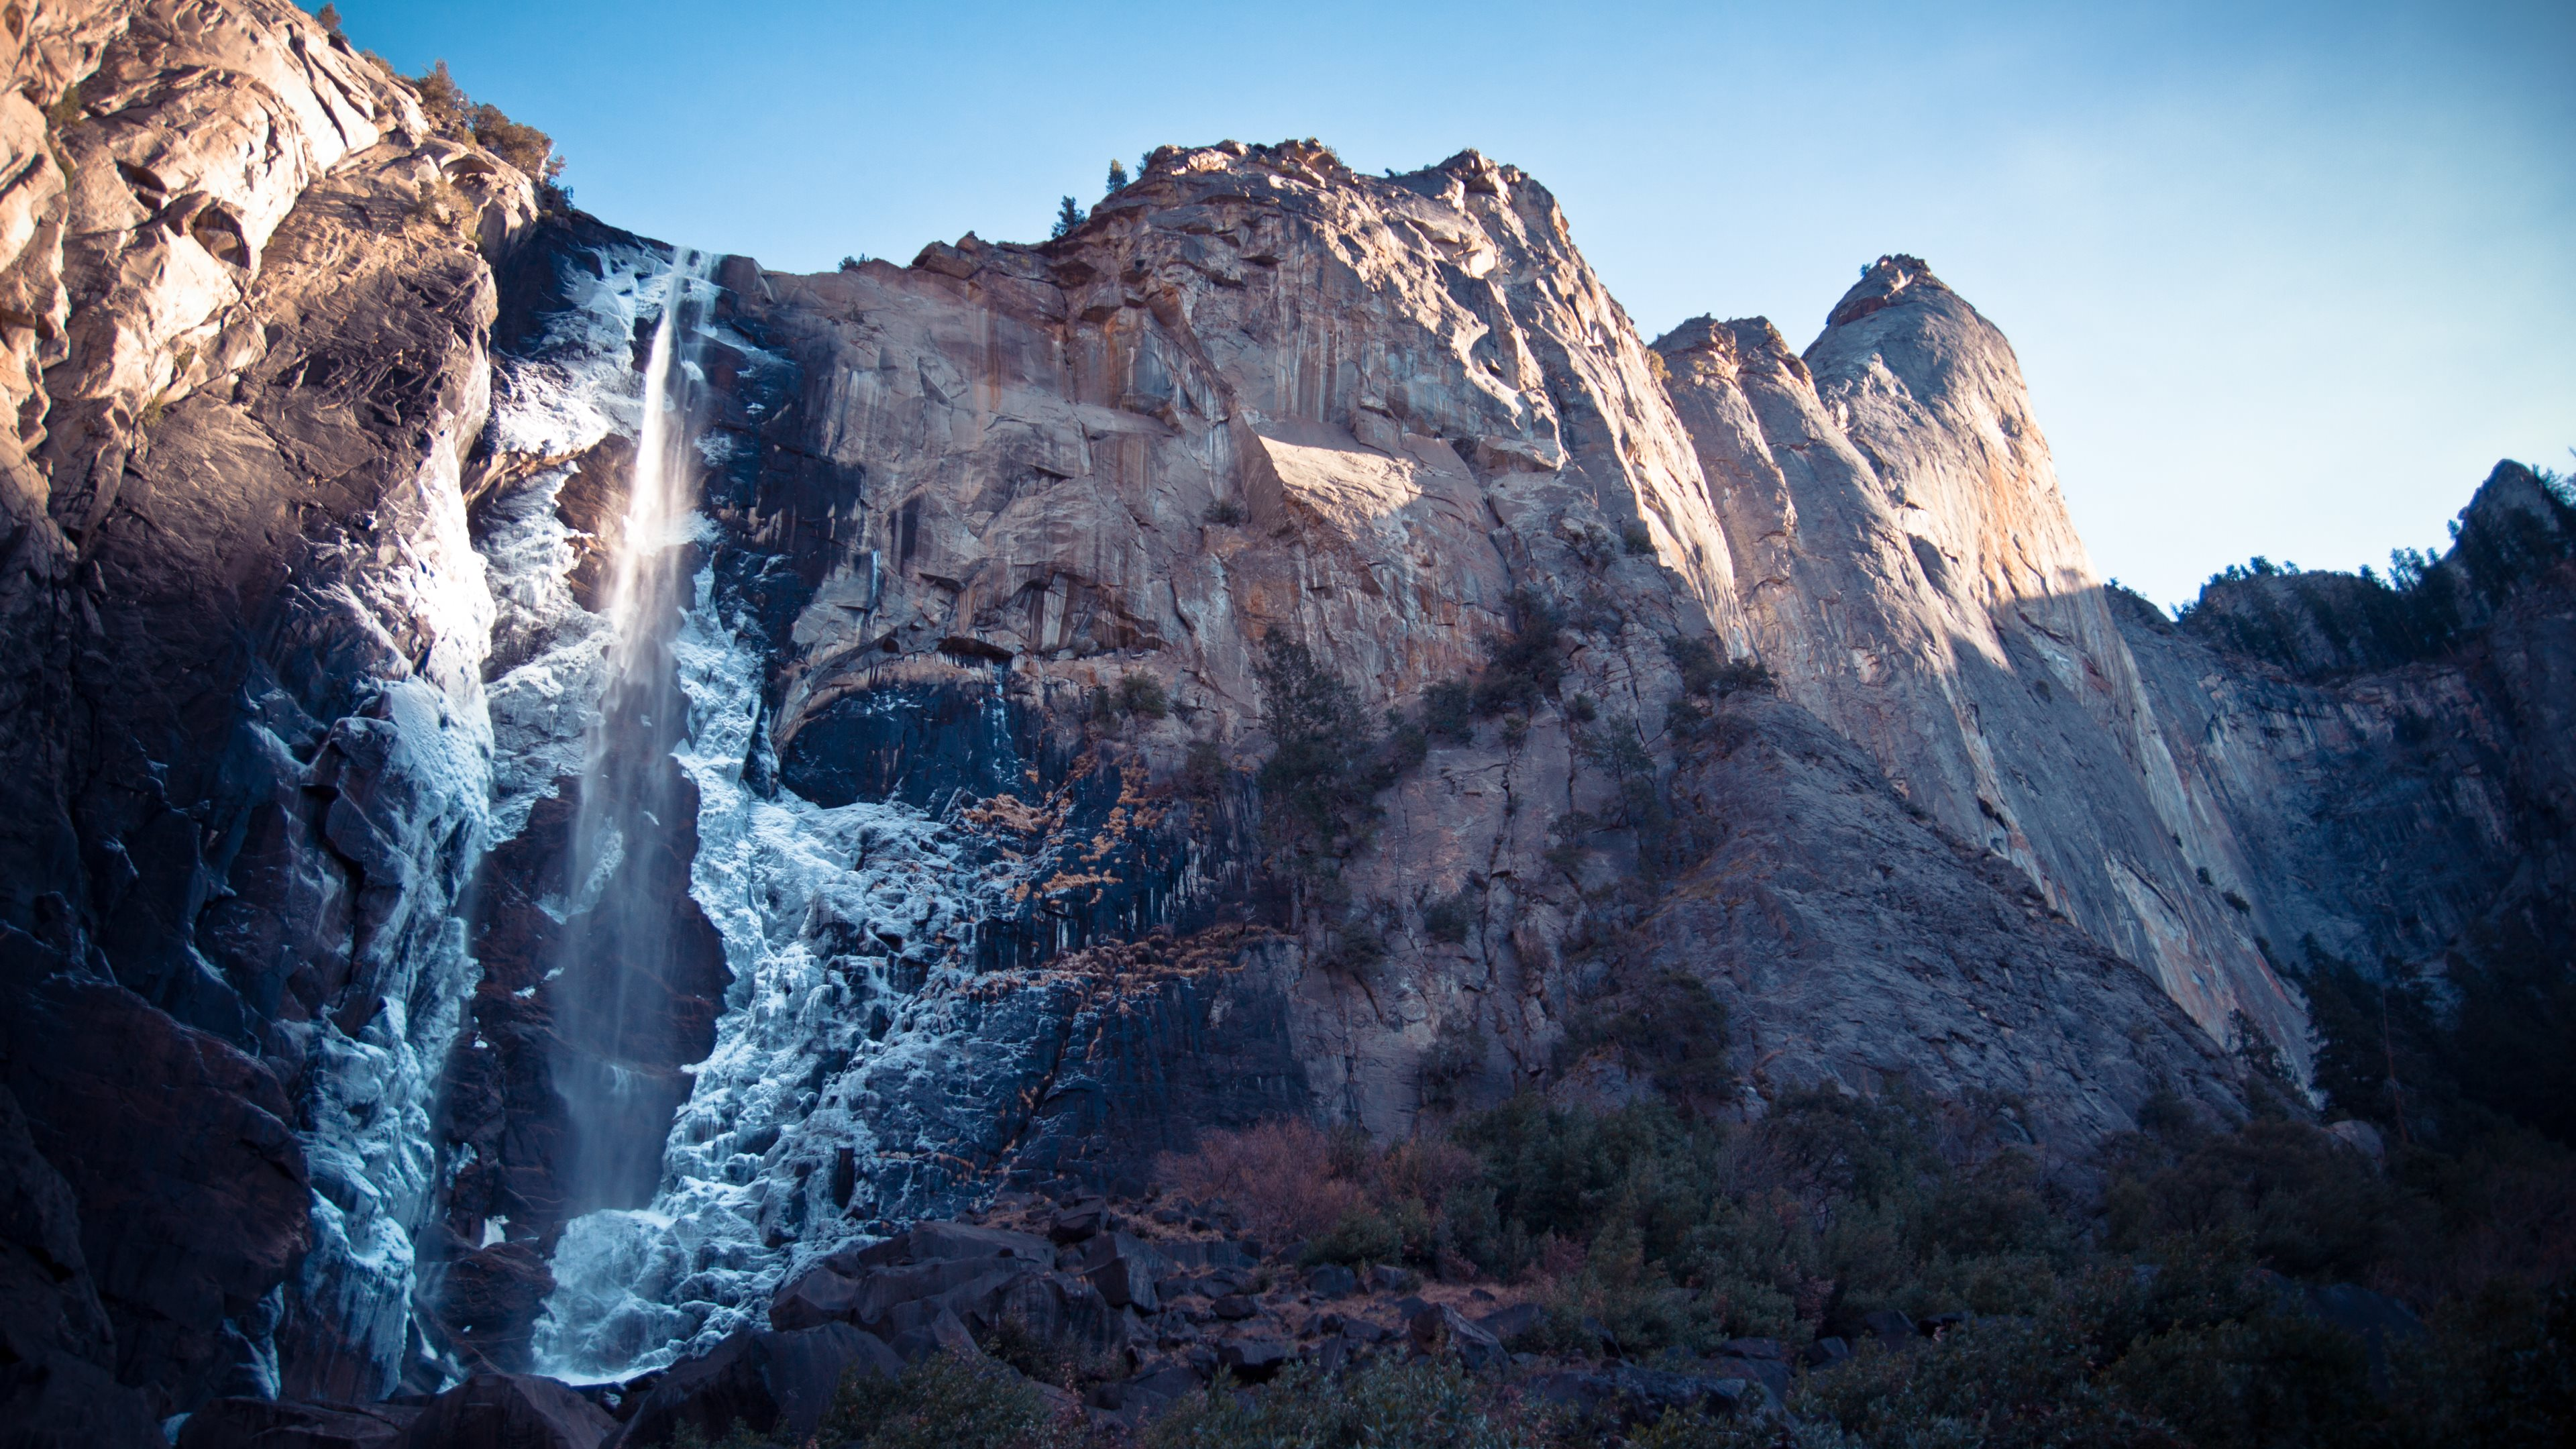 Bridalveil Falls Beautiful Waterfall Down a Cliff 4K Wallpaper jpg 3840x2160